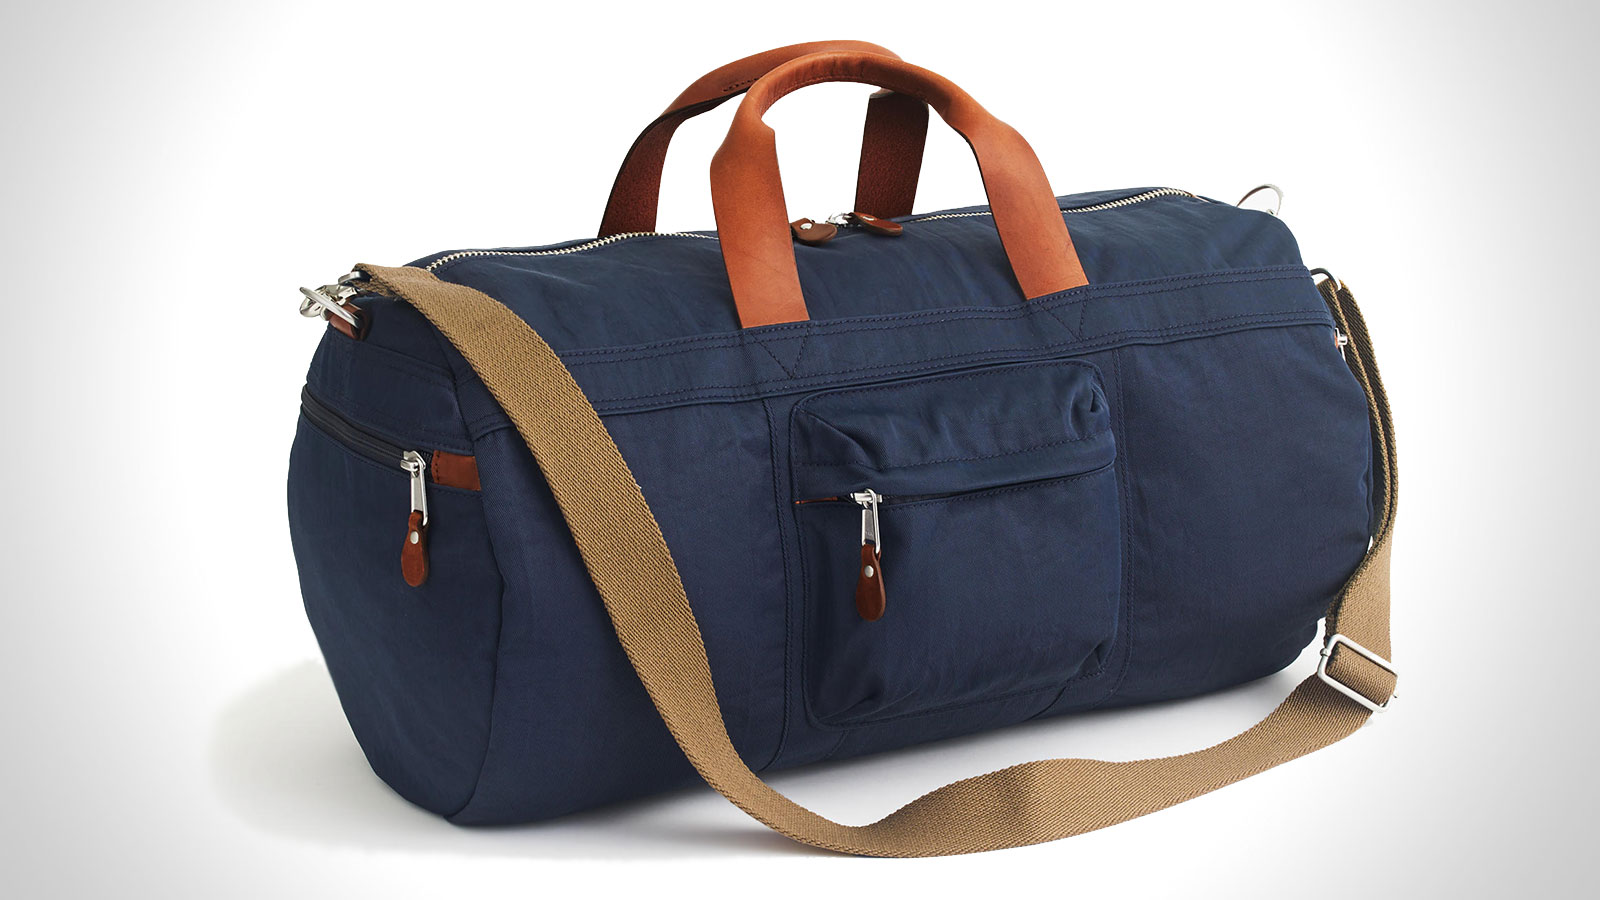 J. Crew Harwick Gym Bag | best mens gym duffle bag